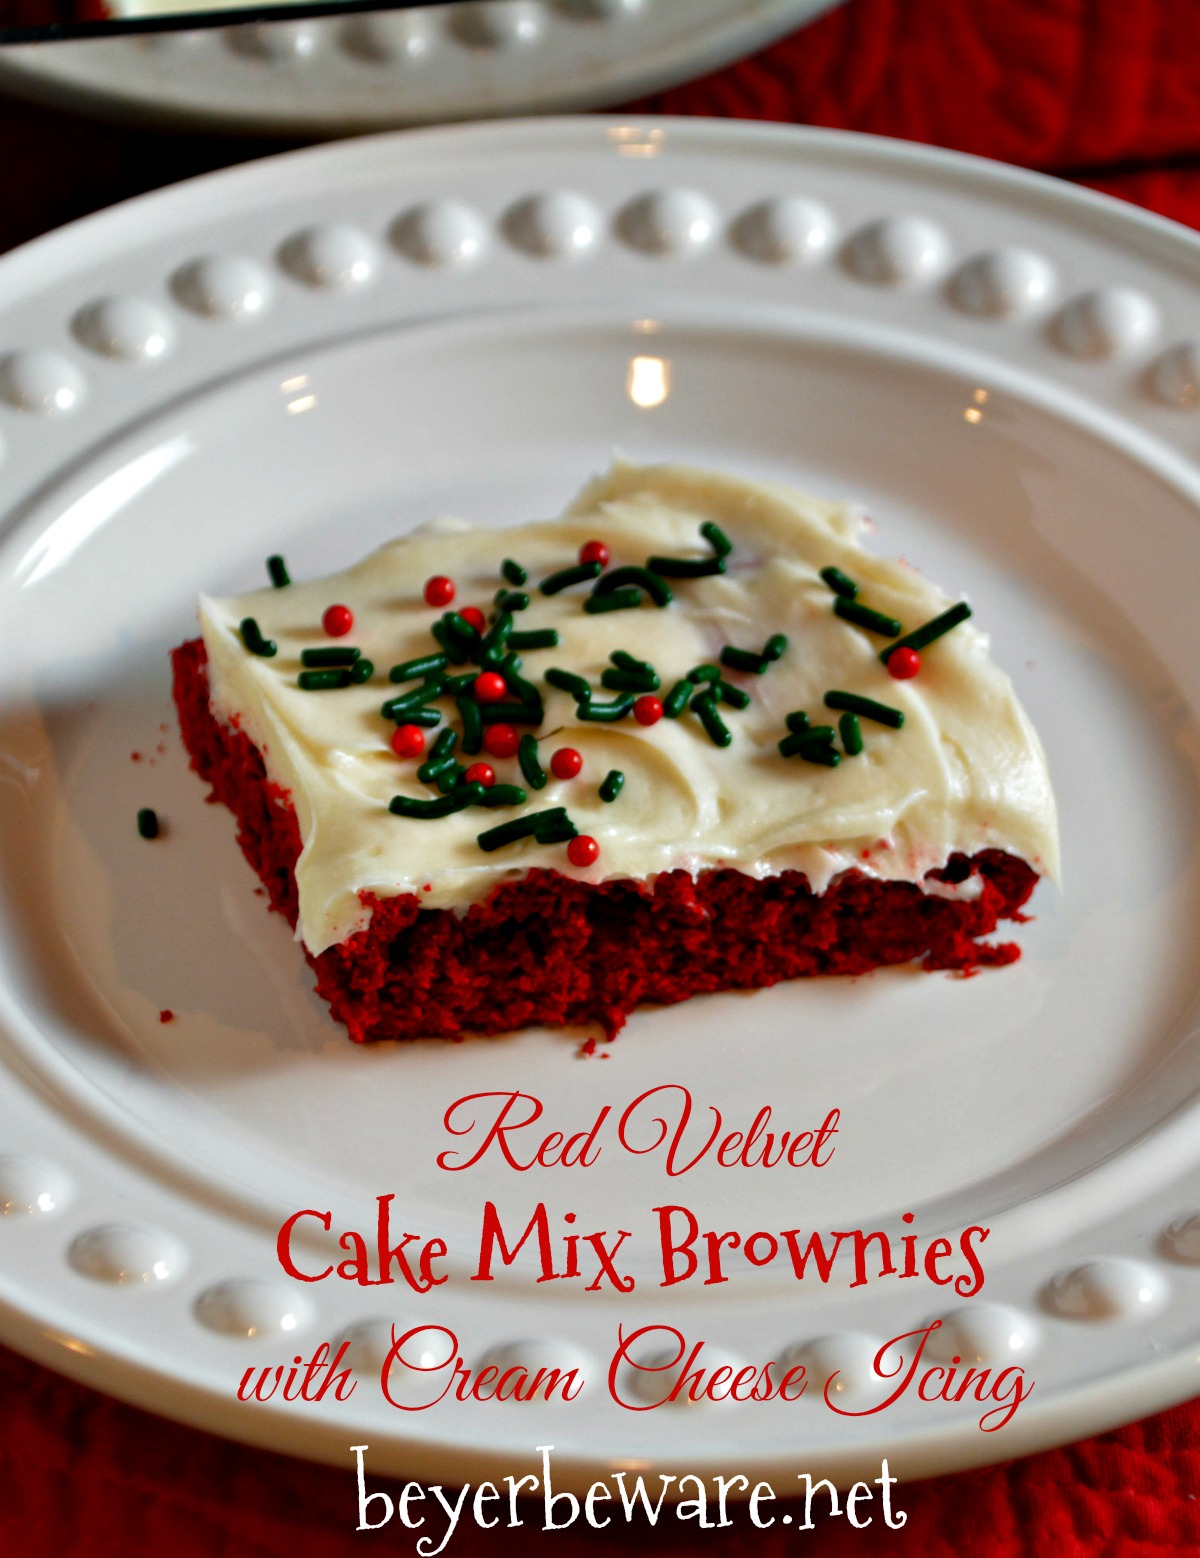 Red Velvet Cake Mix Brownies With Cream Cheese Icing